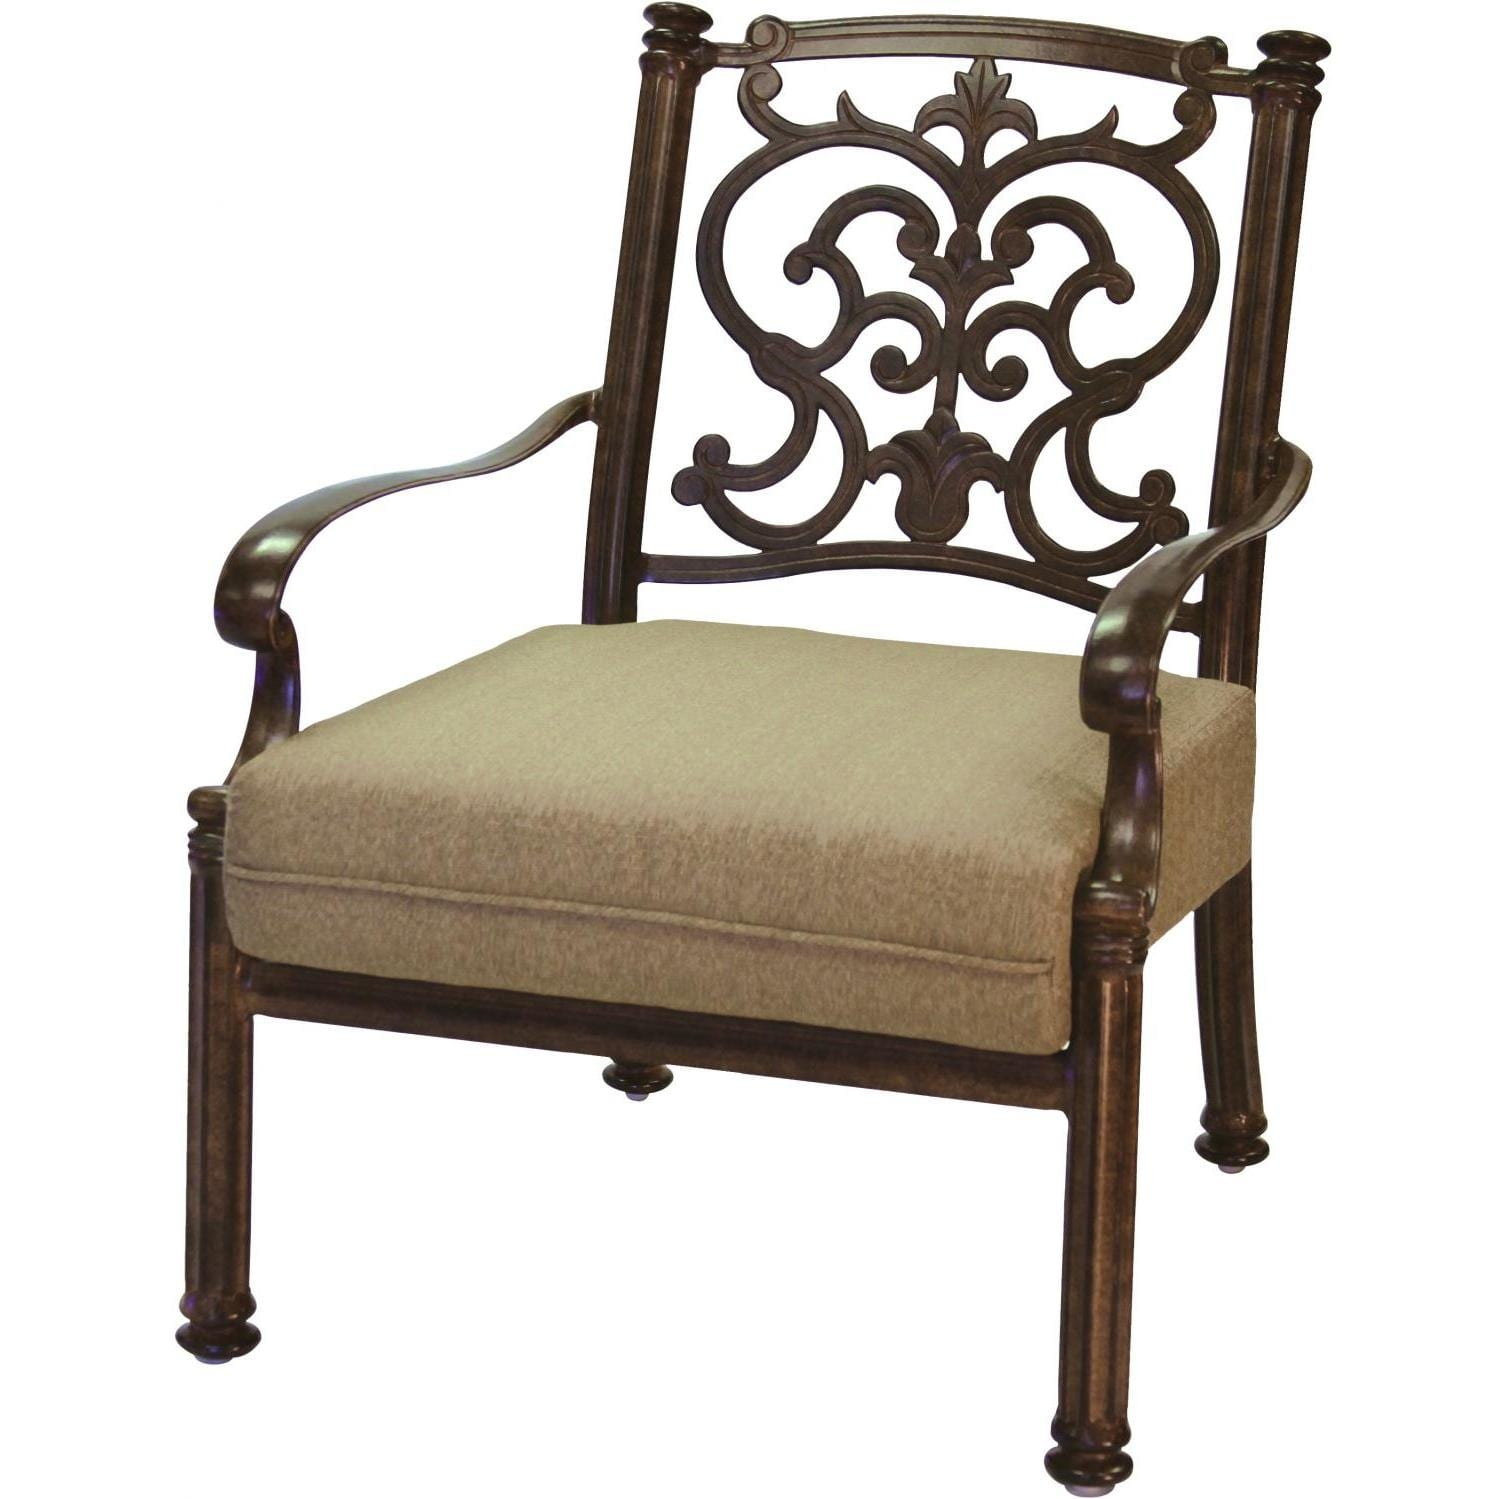 Darlee Santa Barbara Cast Aluminum Patio Club Chair